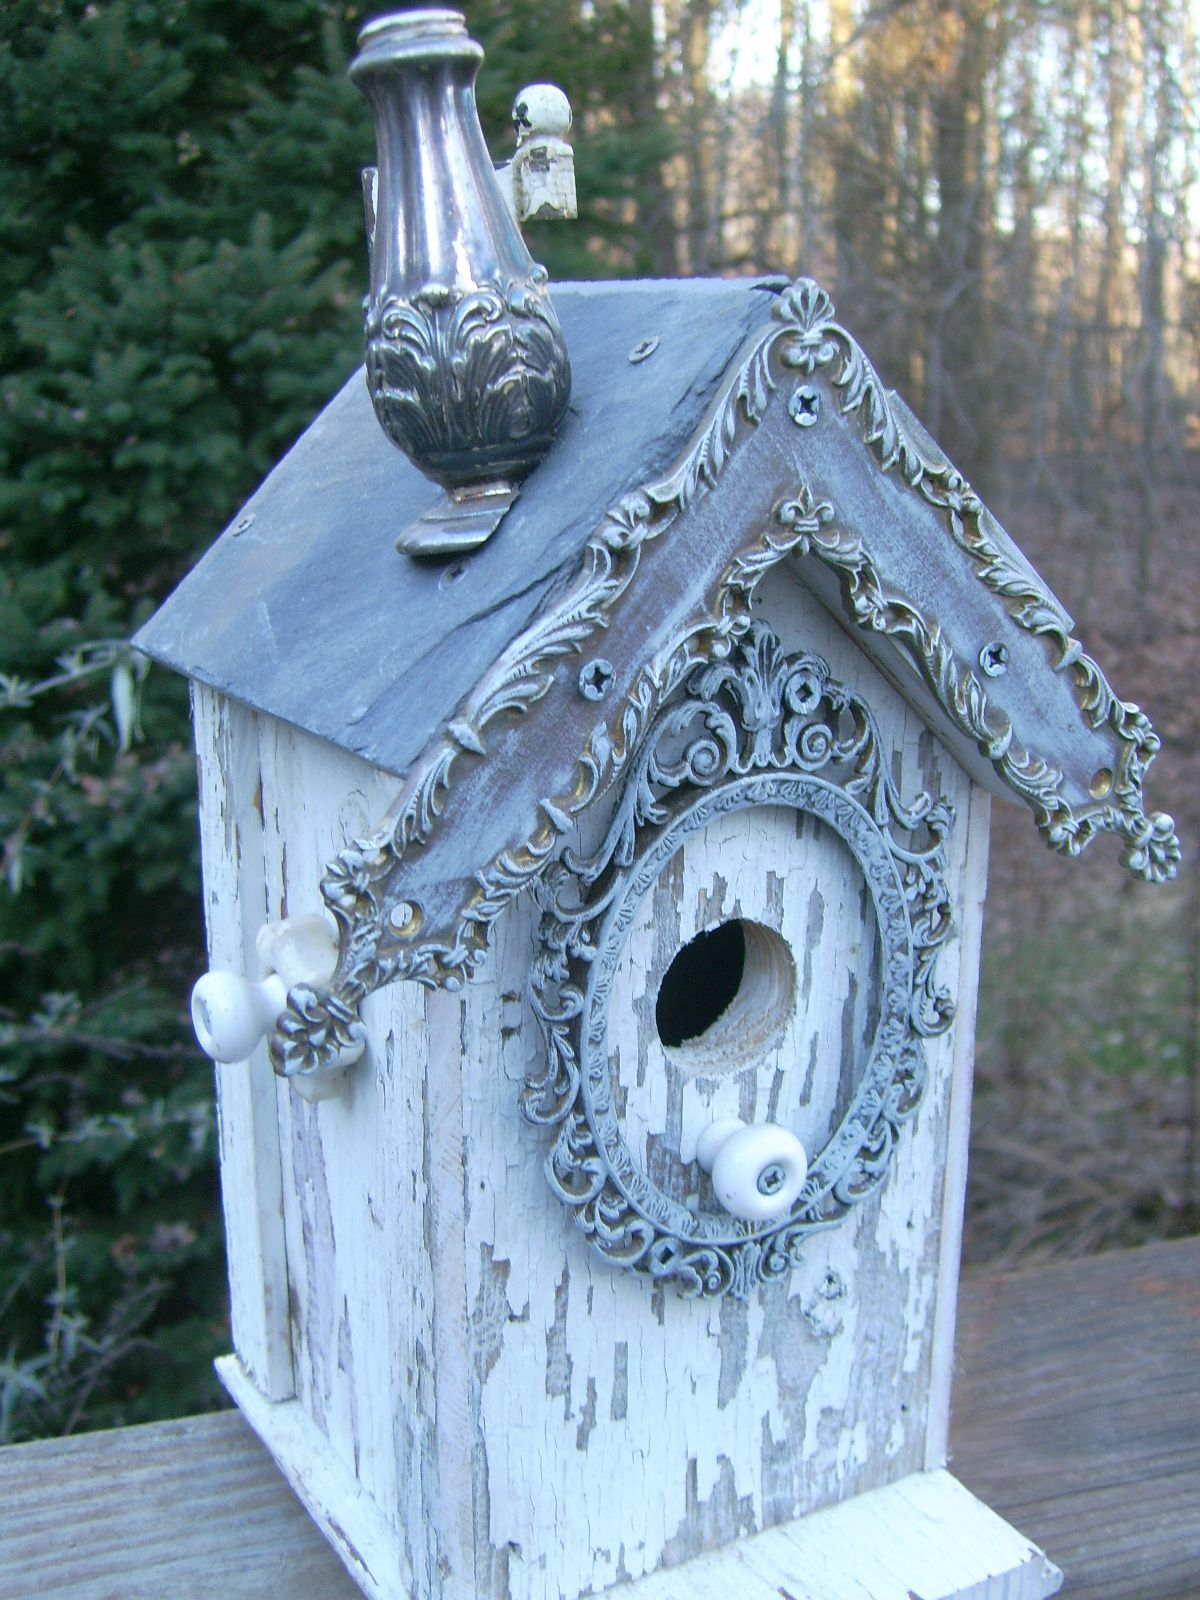 shabby chic birdhouse with salt shaker chimney, picture frame